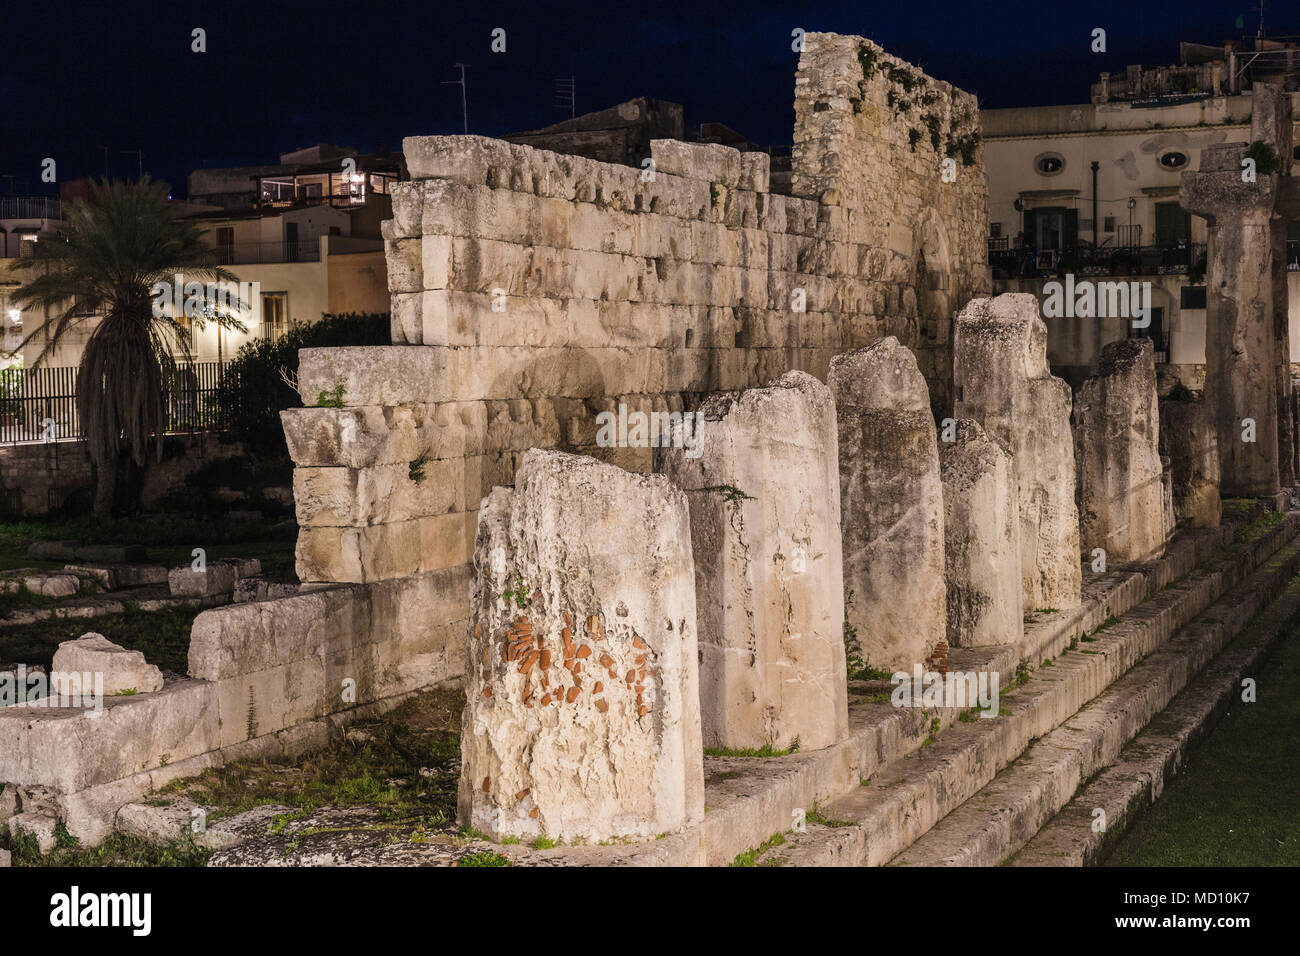 Temple of Apollo in Ortigia, Siracusa, Sicily. - Stock Image